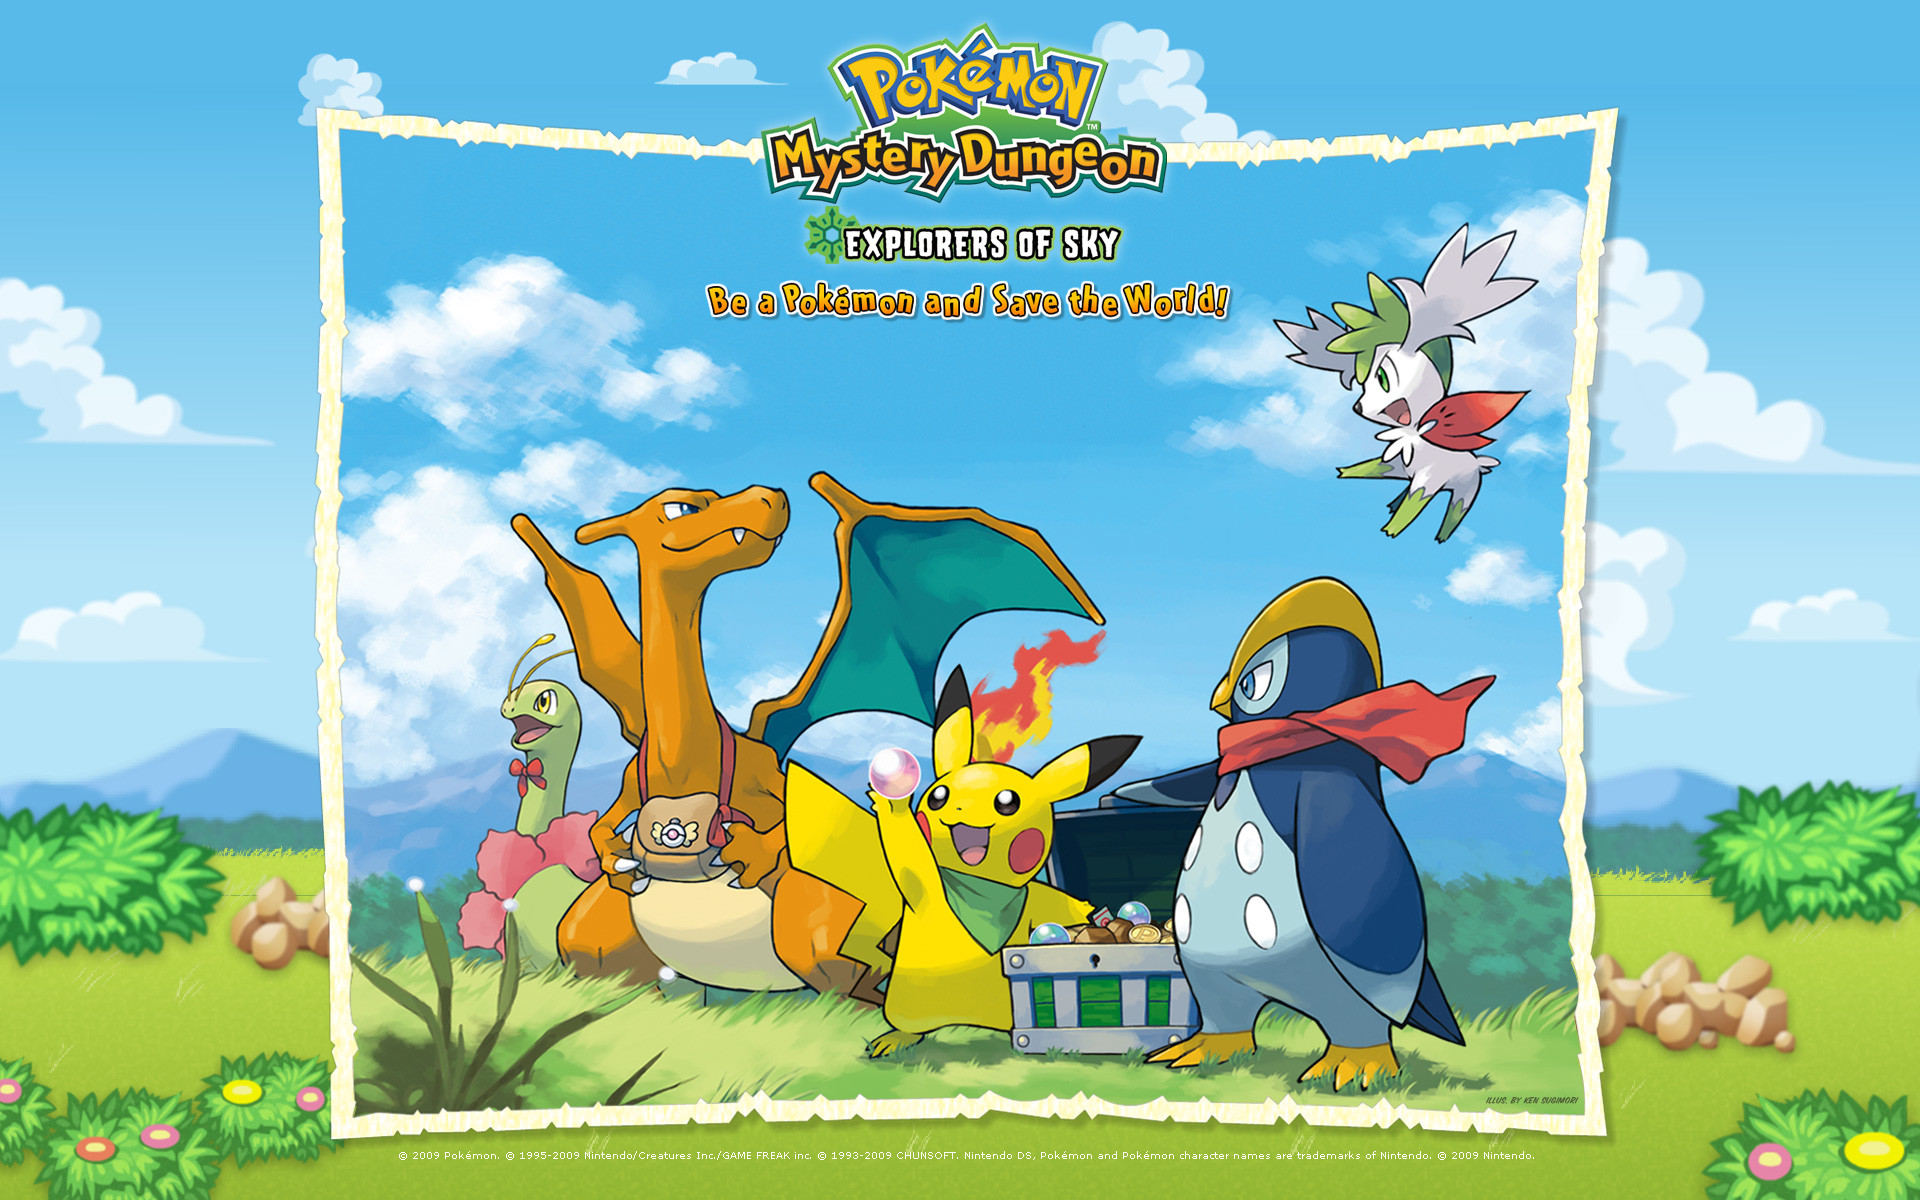 Pokemon Mystery Dungeon Cover Free Download by Eleonoora Franzettoini